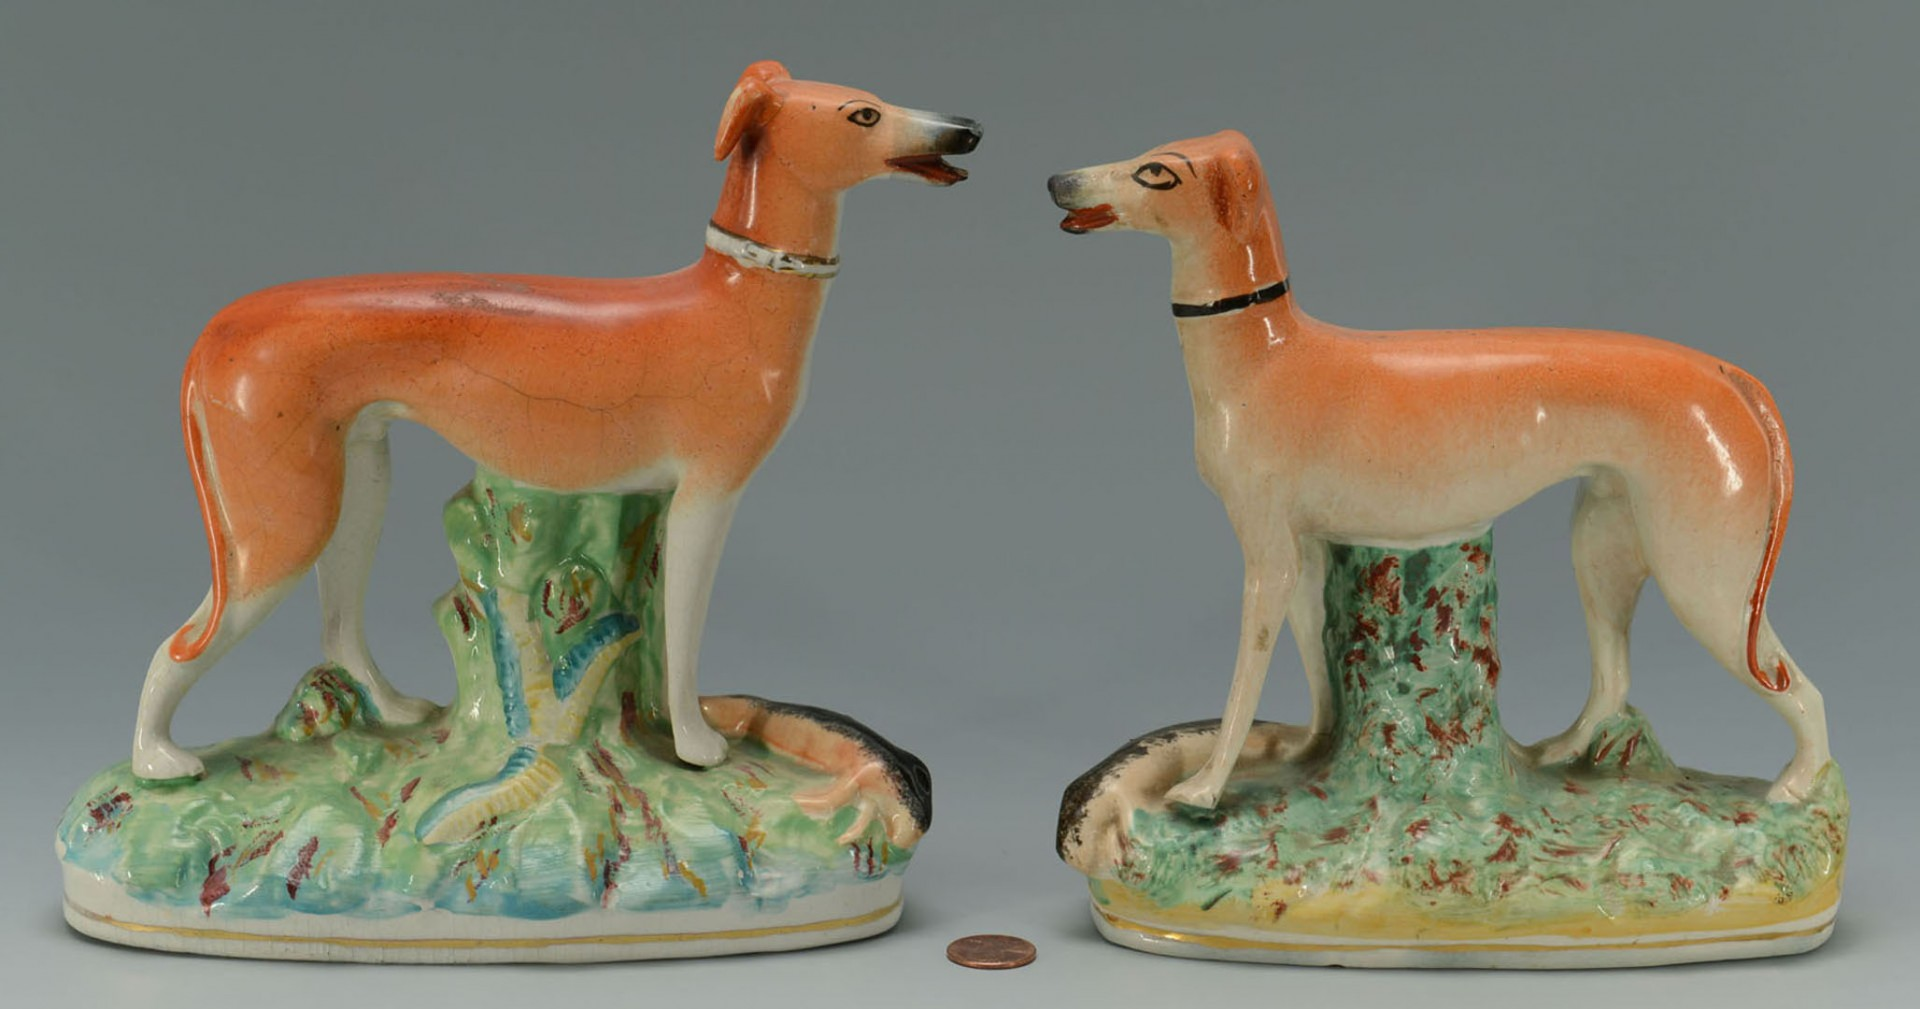 Lot 2872342: 2 Staffordshire Pottery Whippet Figures